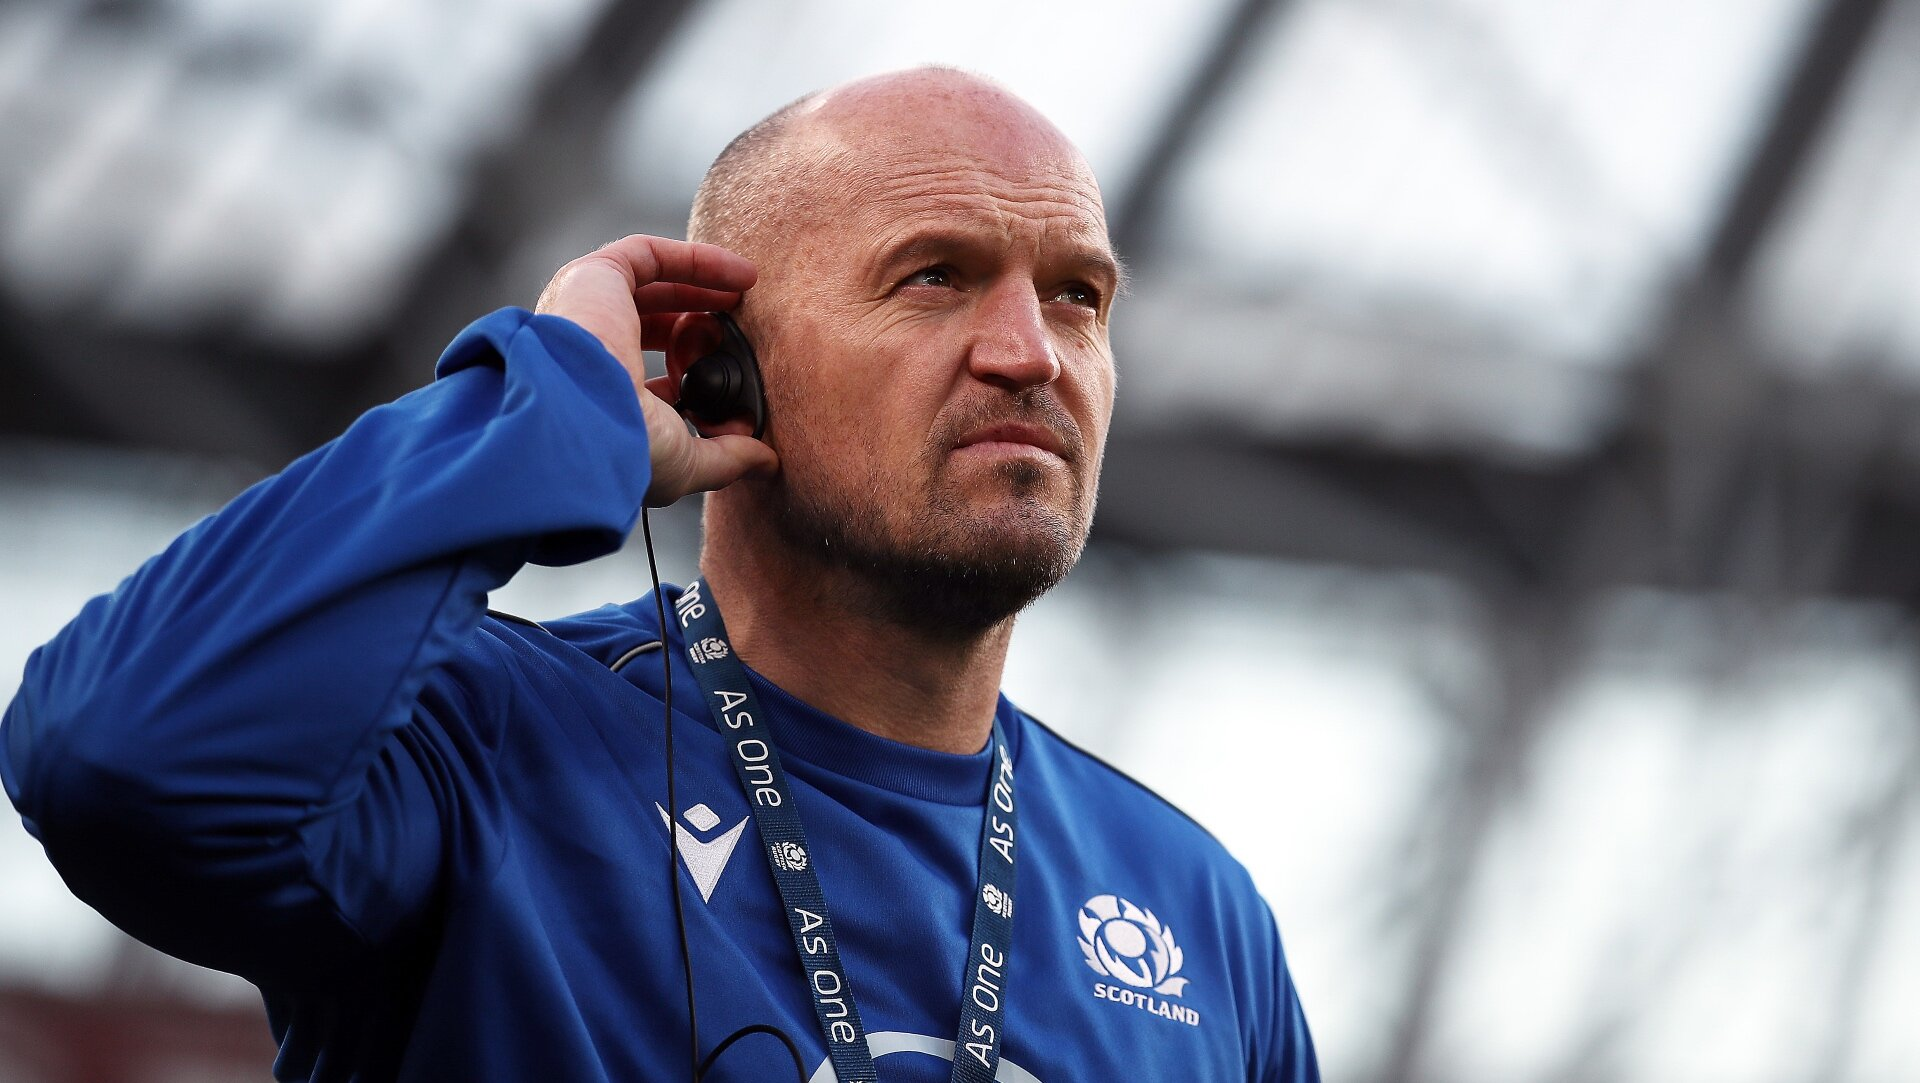 Gregor Townsend takes the Andy Farrell pay deferral route, unlike Eddie Jones who took pay cut